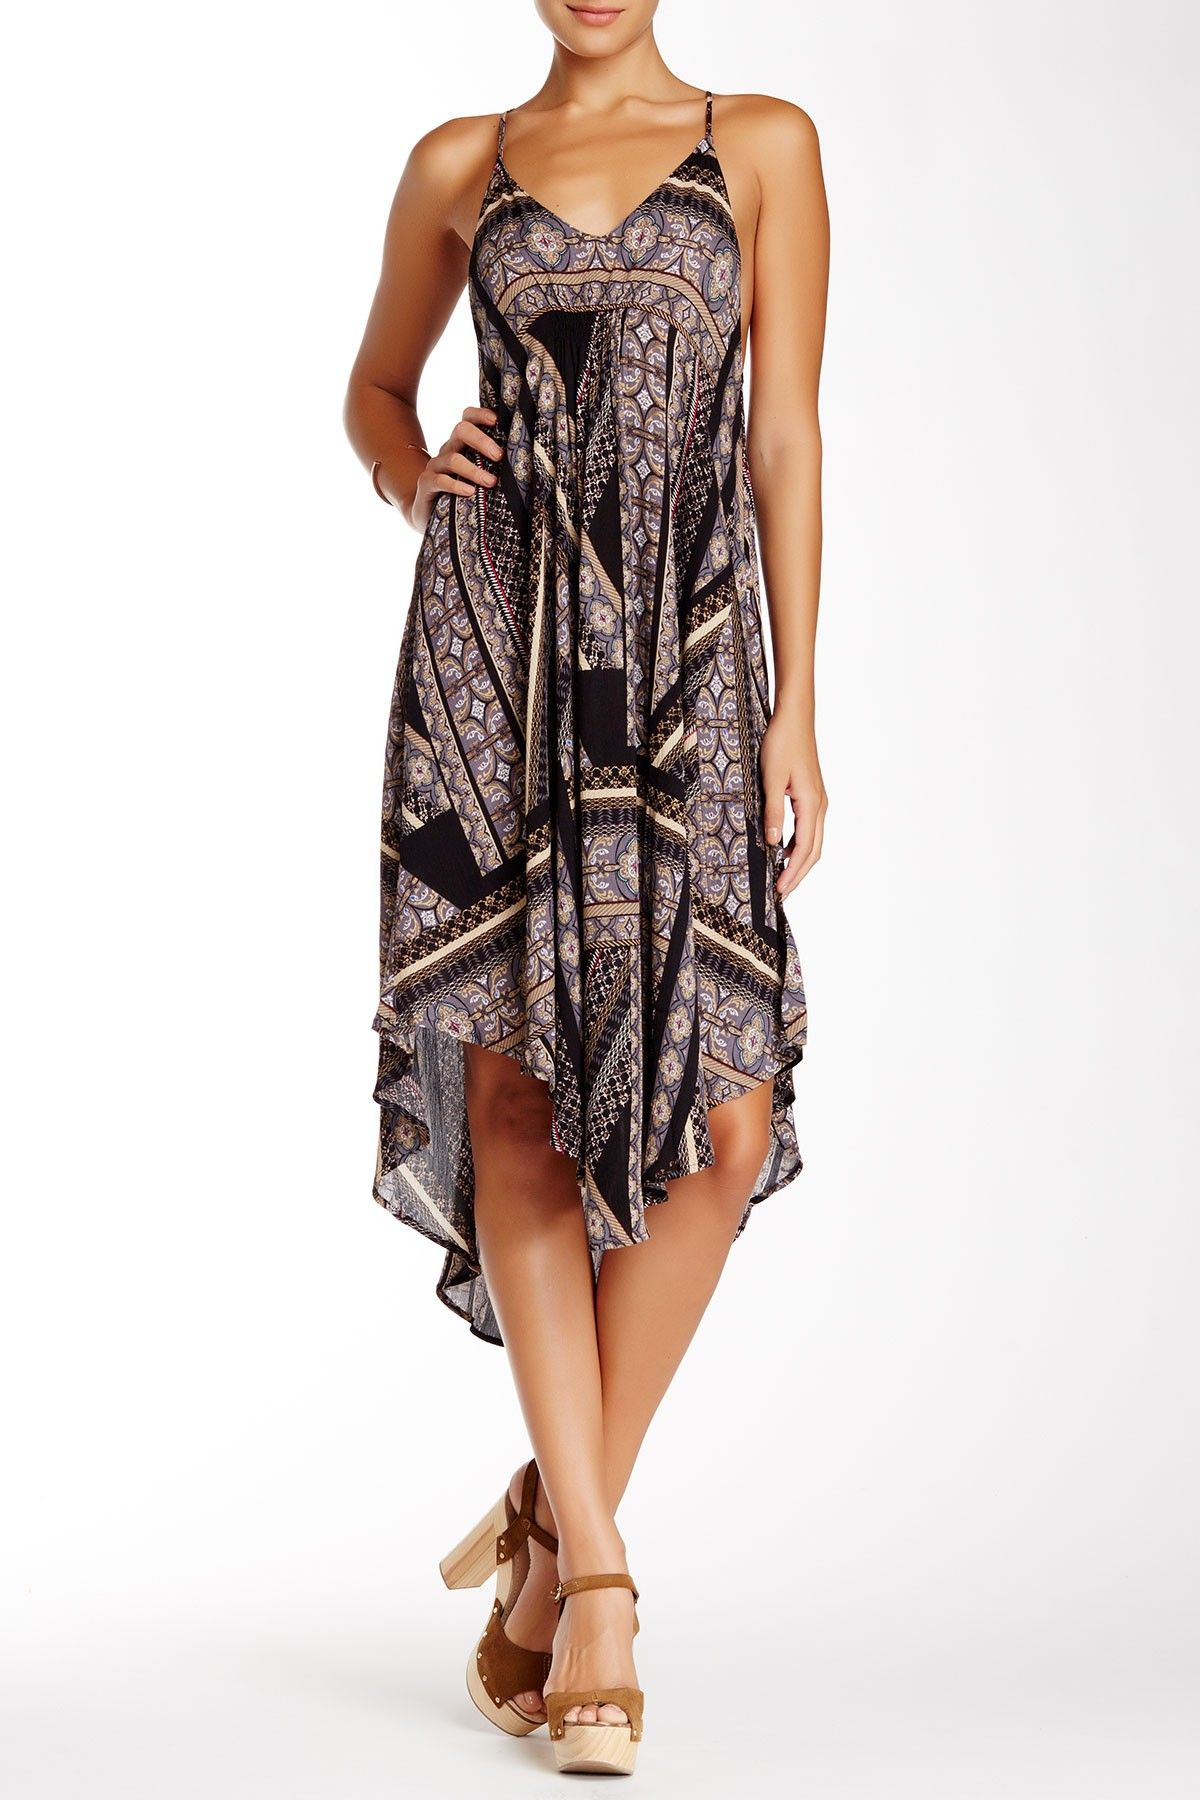 fb21e7cec Strappy Midi Dress | Clothing and Style | Dresses, Nordstrom dresses ...